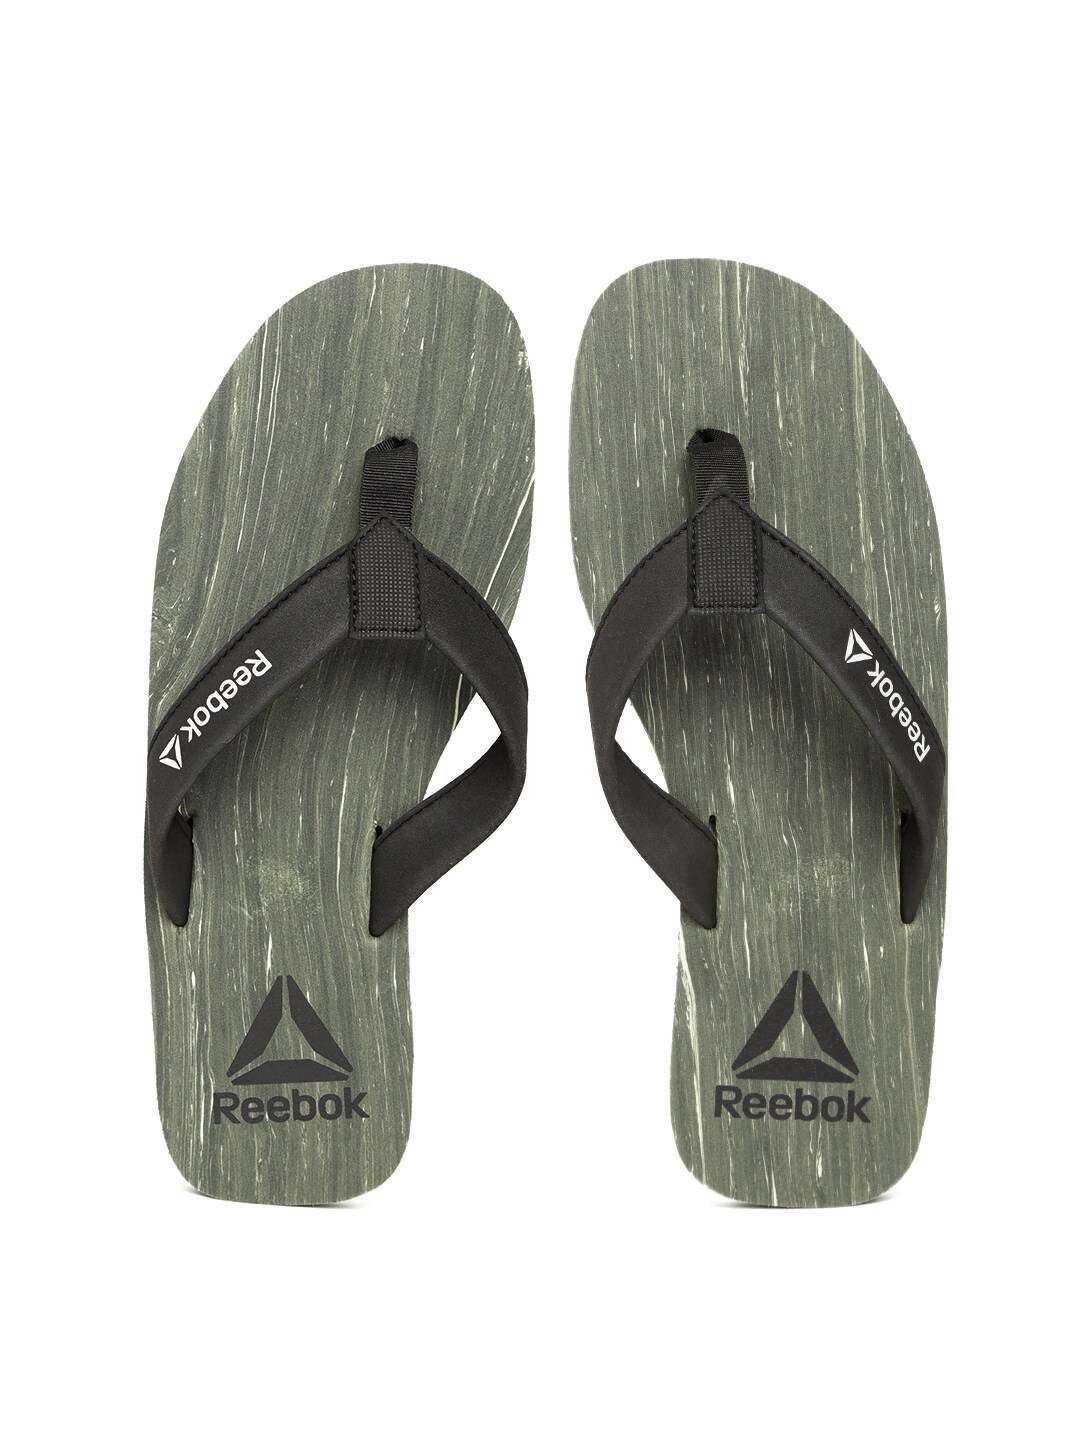 77858d336a0c Flip Flops for Men - Buy Slippers   Flip Flops for Men Online